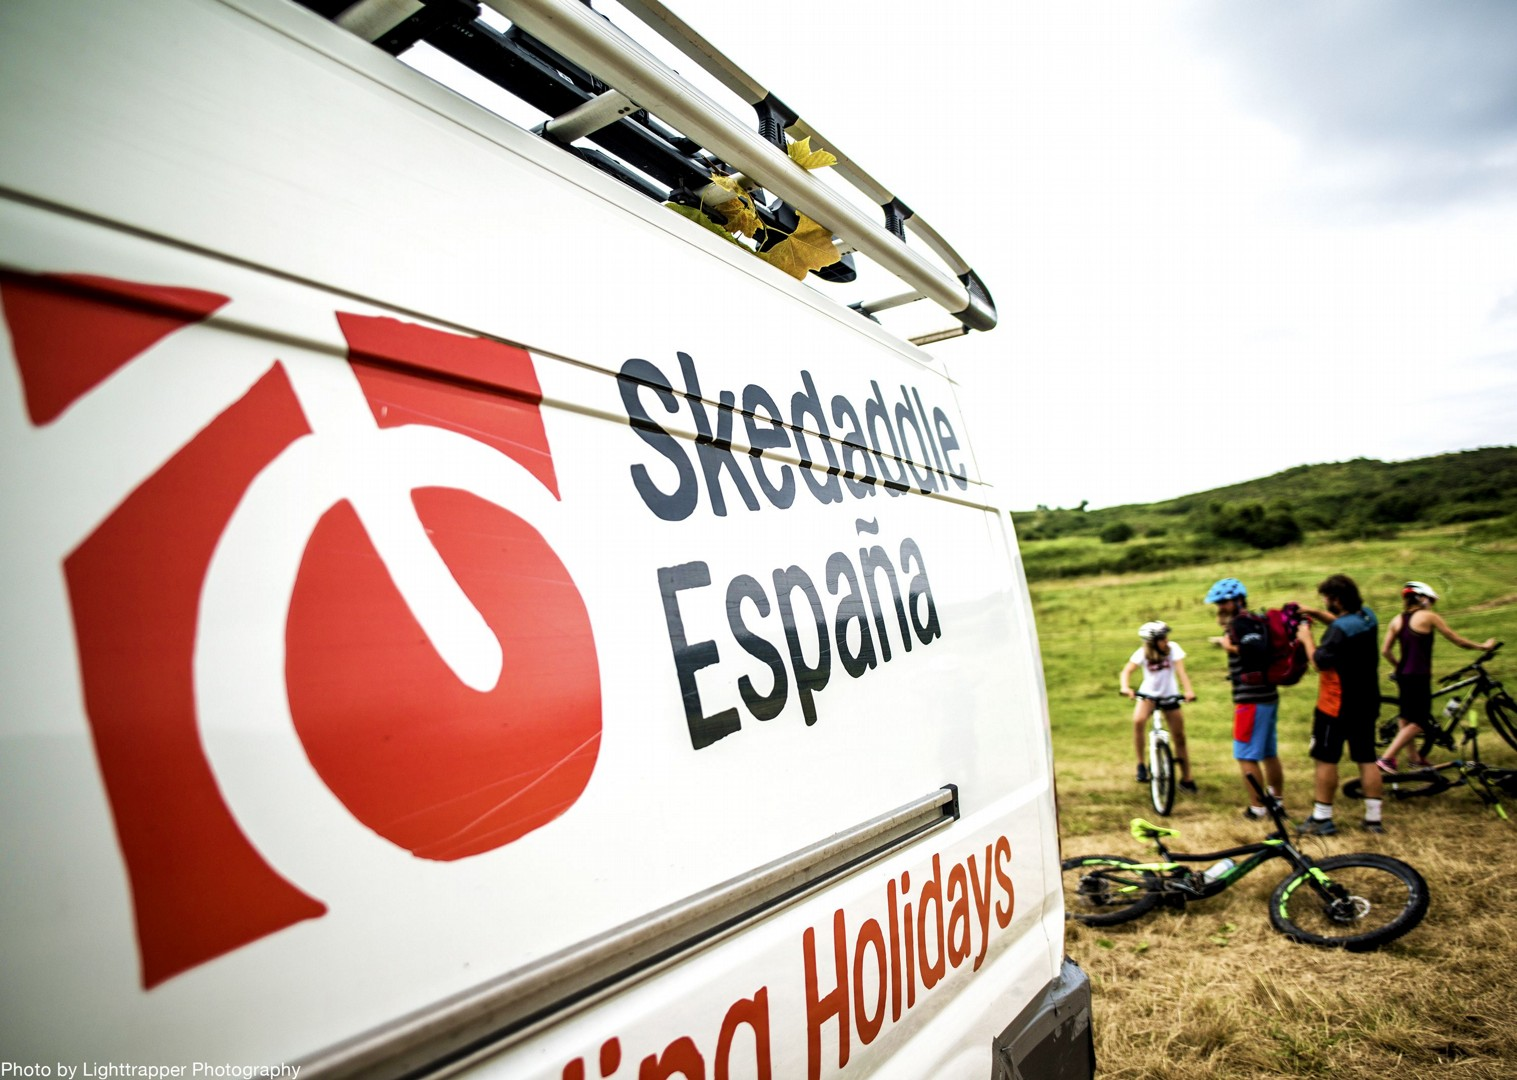 saddle-skedaddle-espana-spain-cycling-holidays.jpg - Northern Spain - Camino de Santiago - Guided Leisure Cycling Holiday - Leisure Cycling